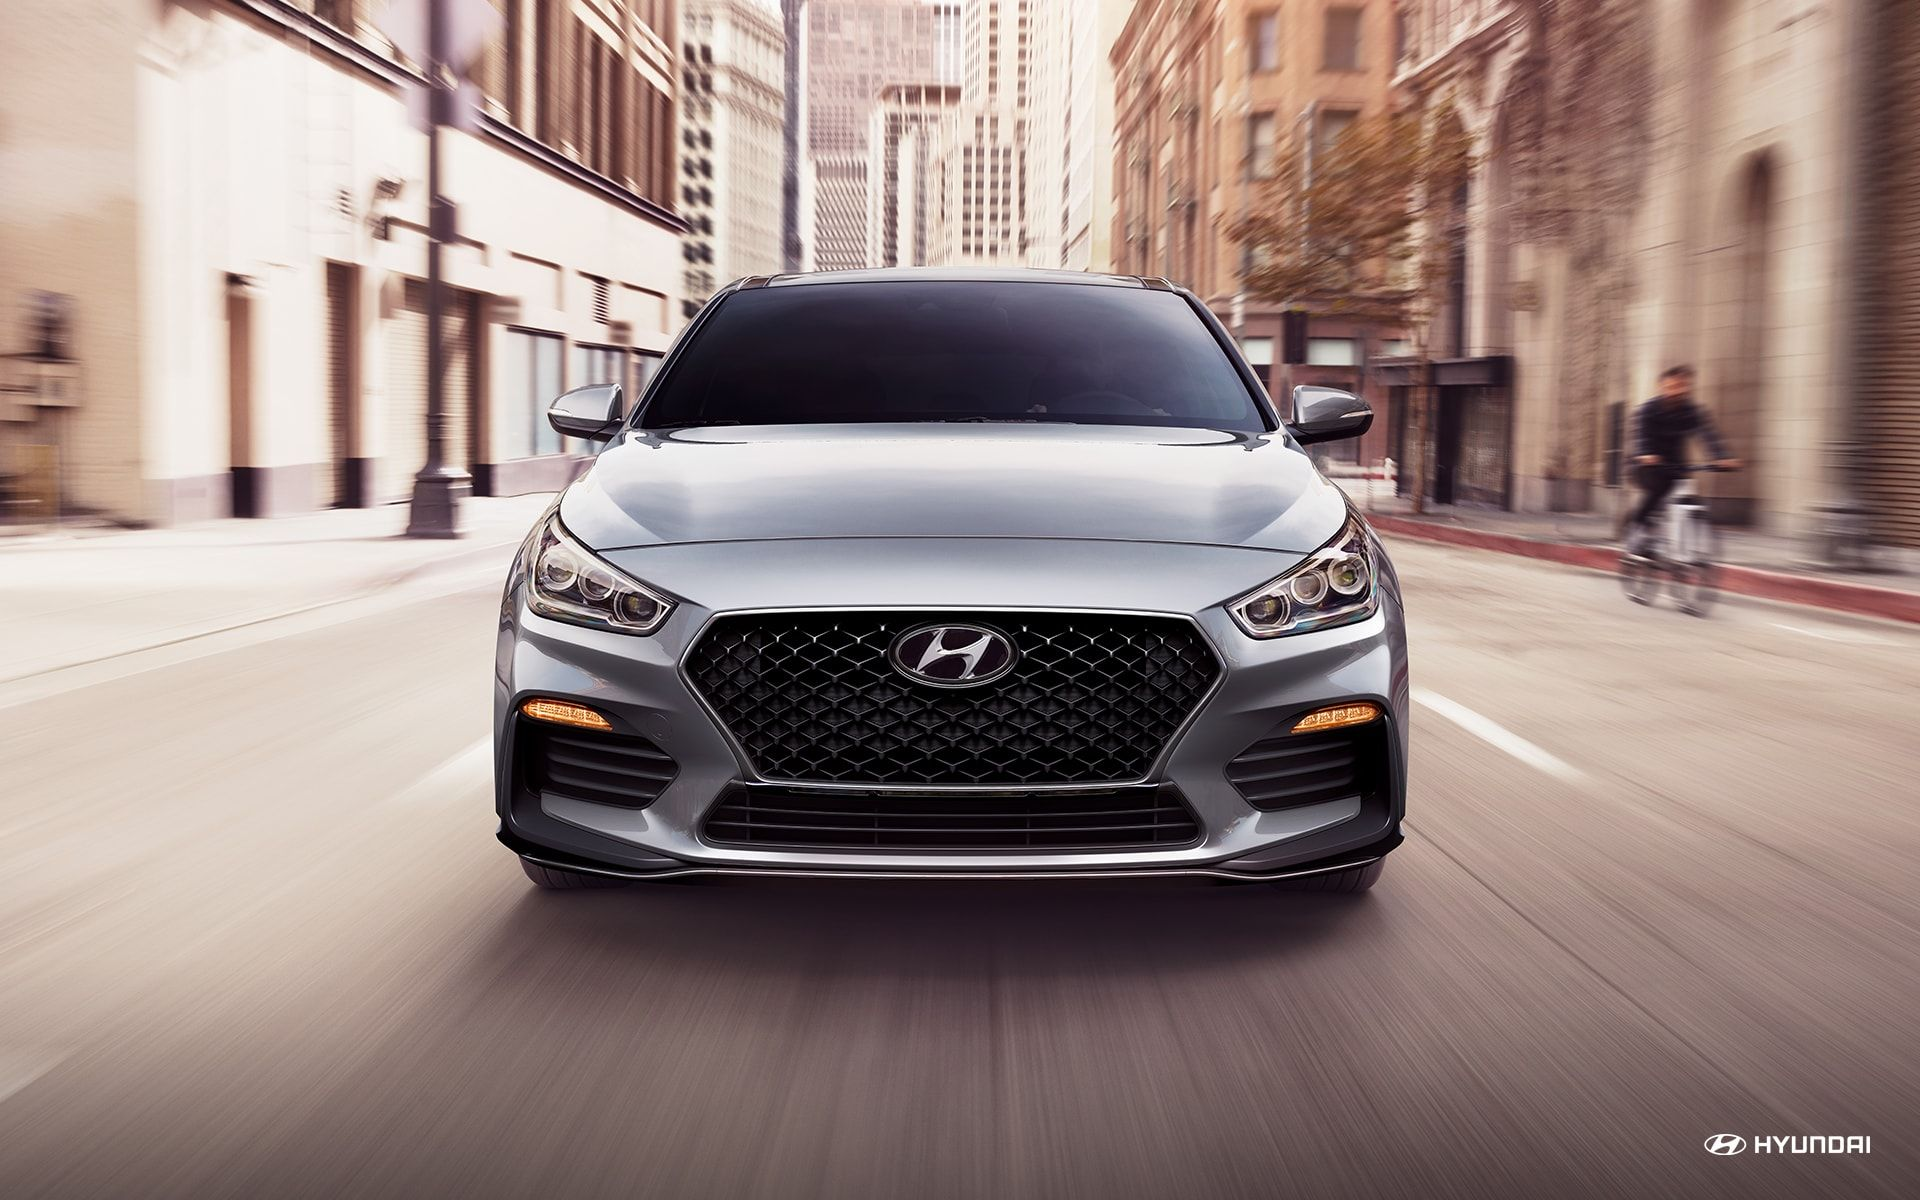 Hyundai Dealership serving Deltona, FL | Headquarter Hyundai